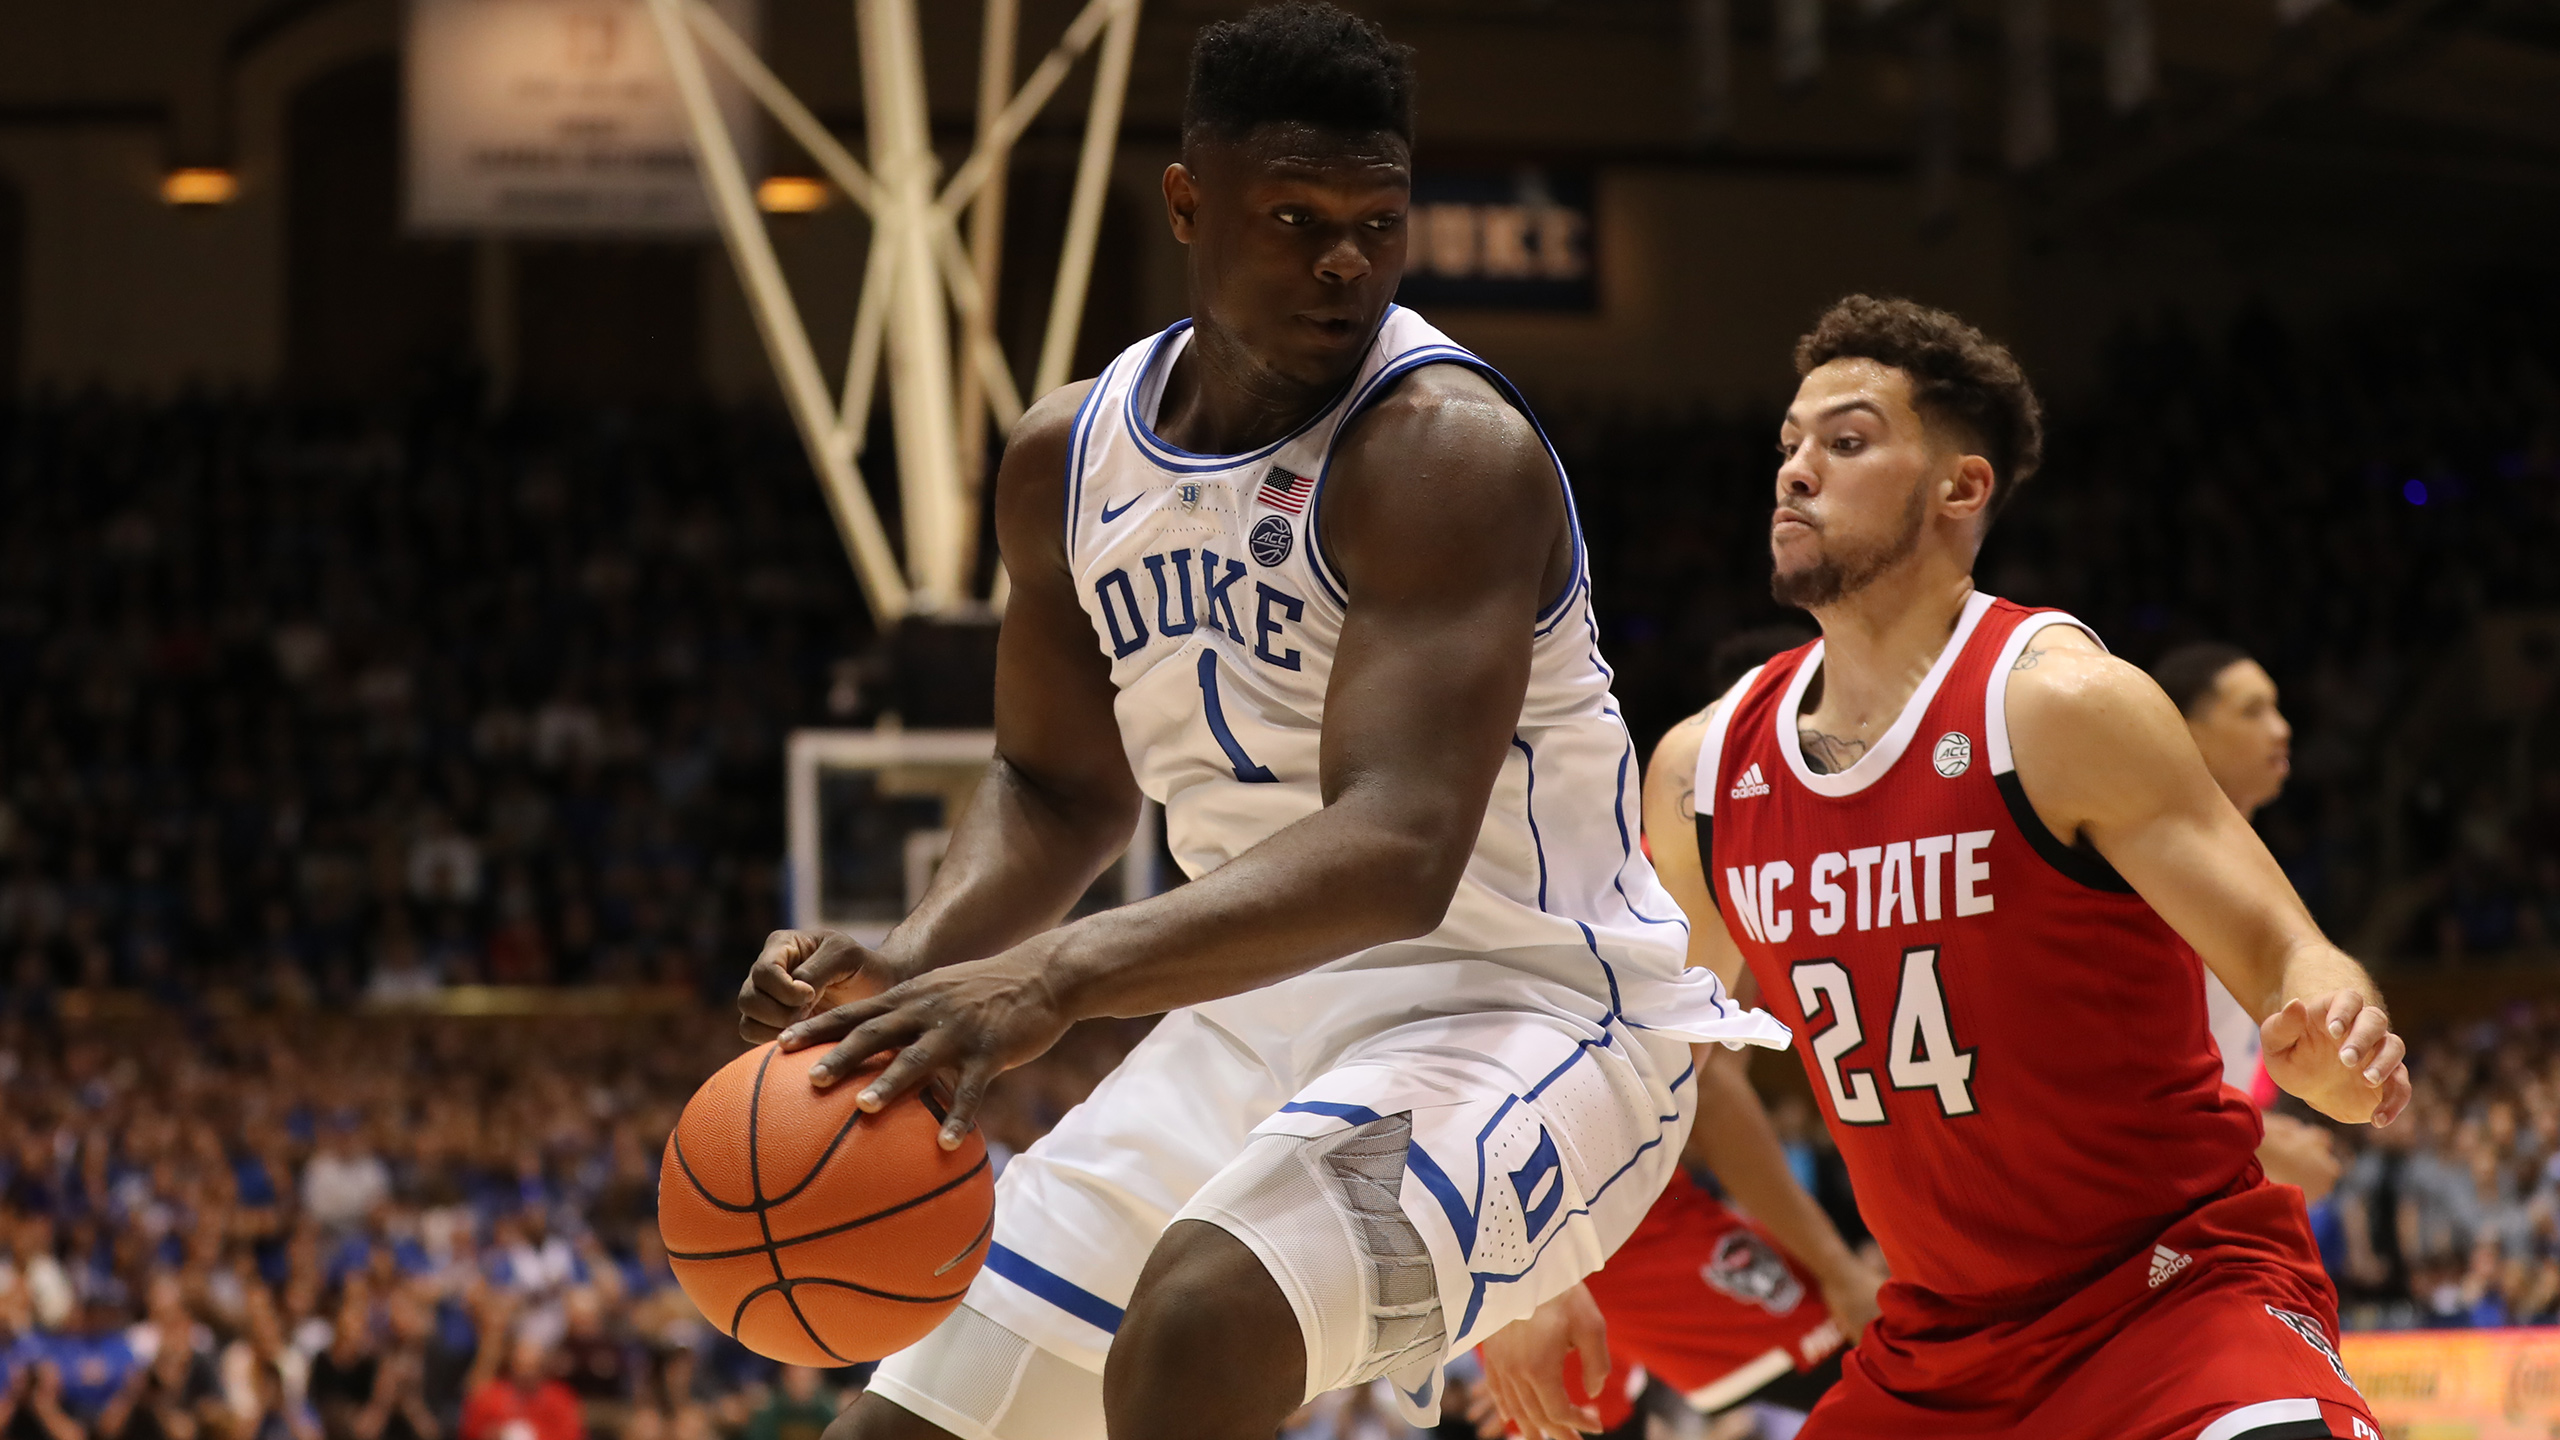 NC State vs. #2 Duke (M Basketball)